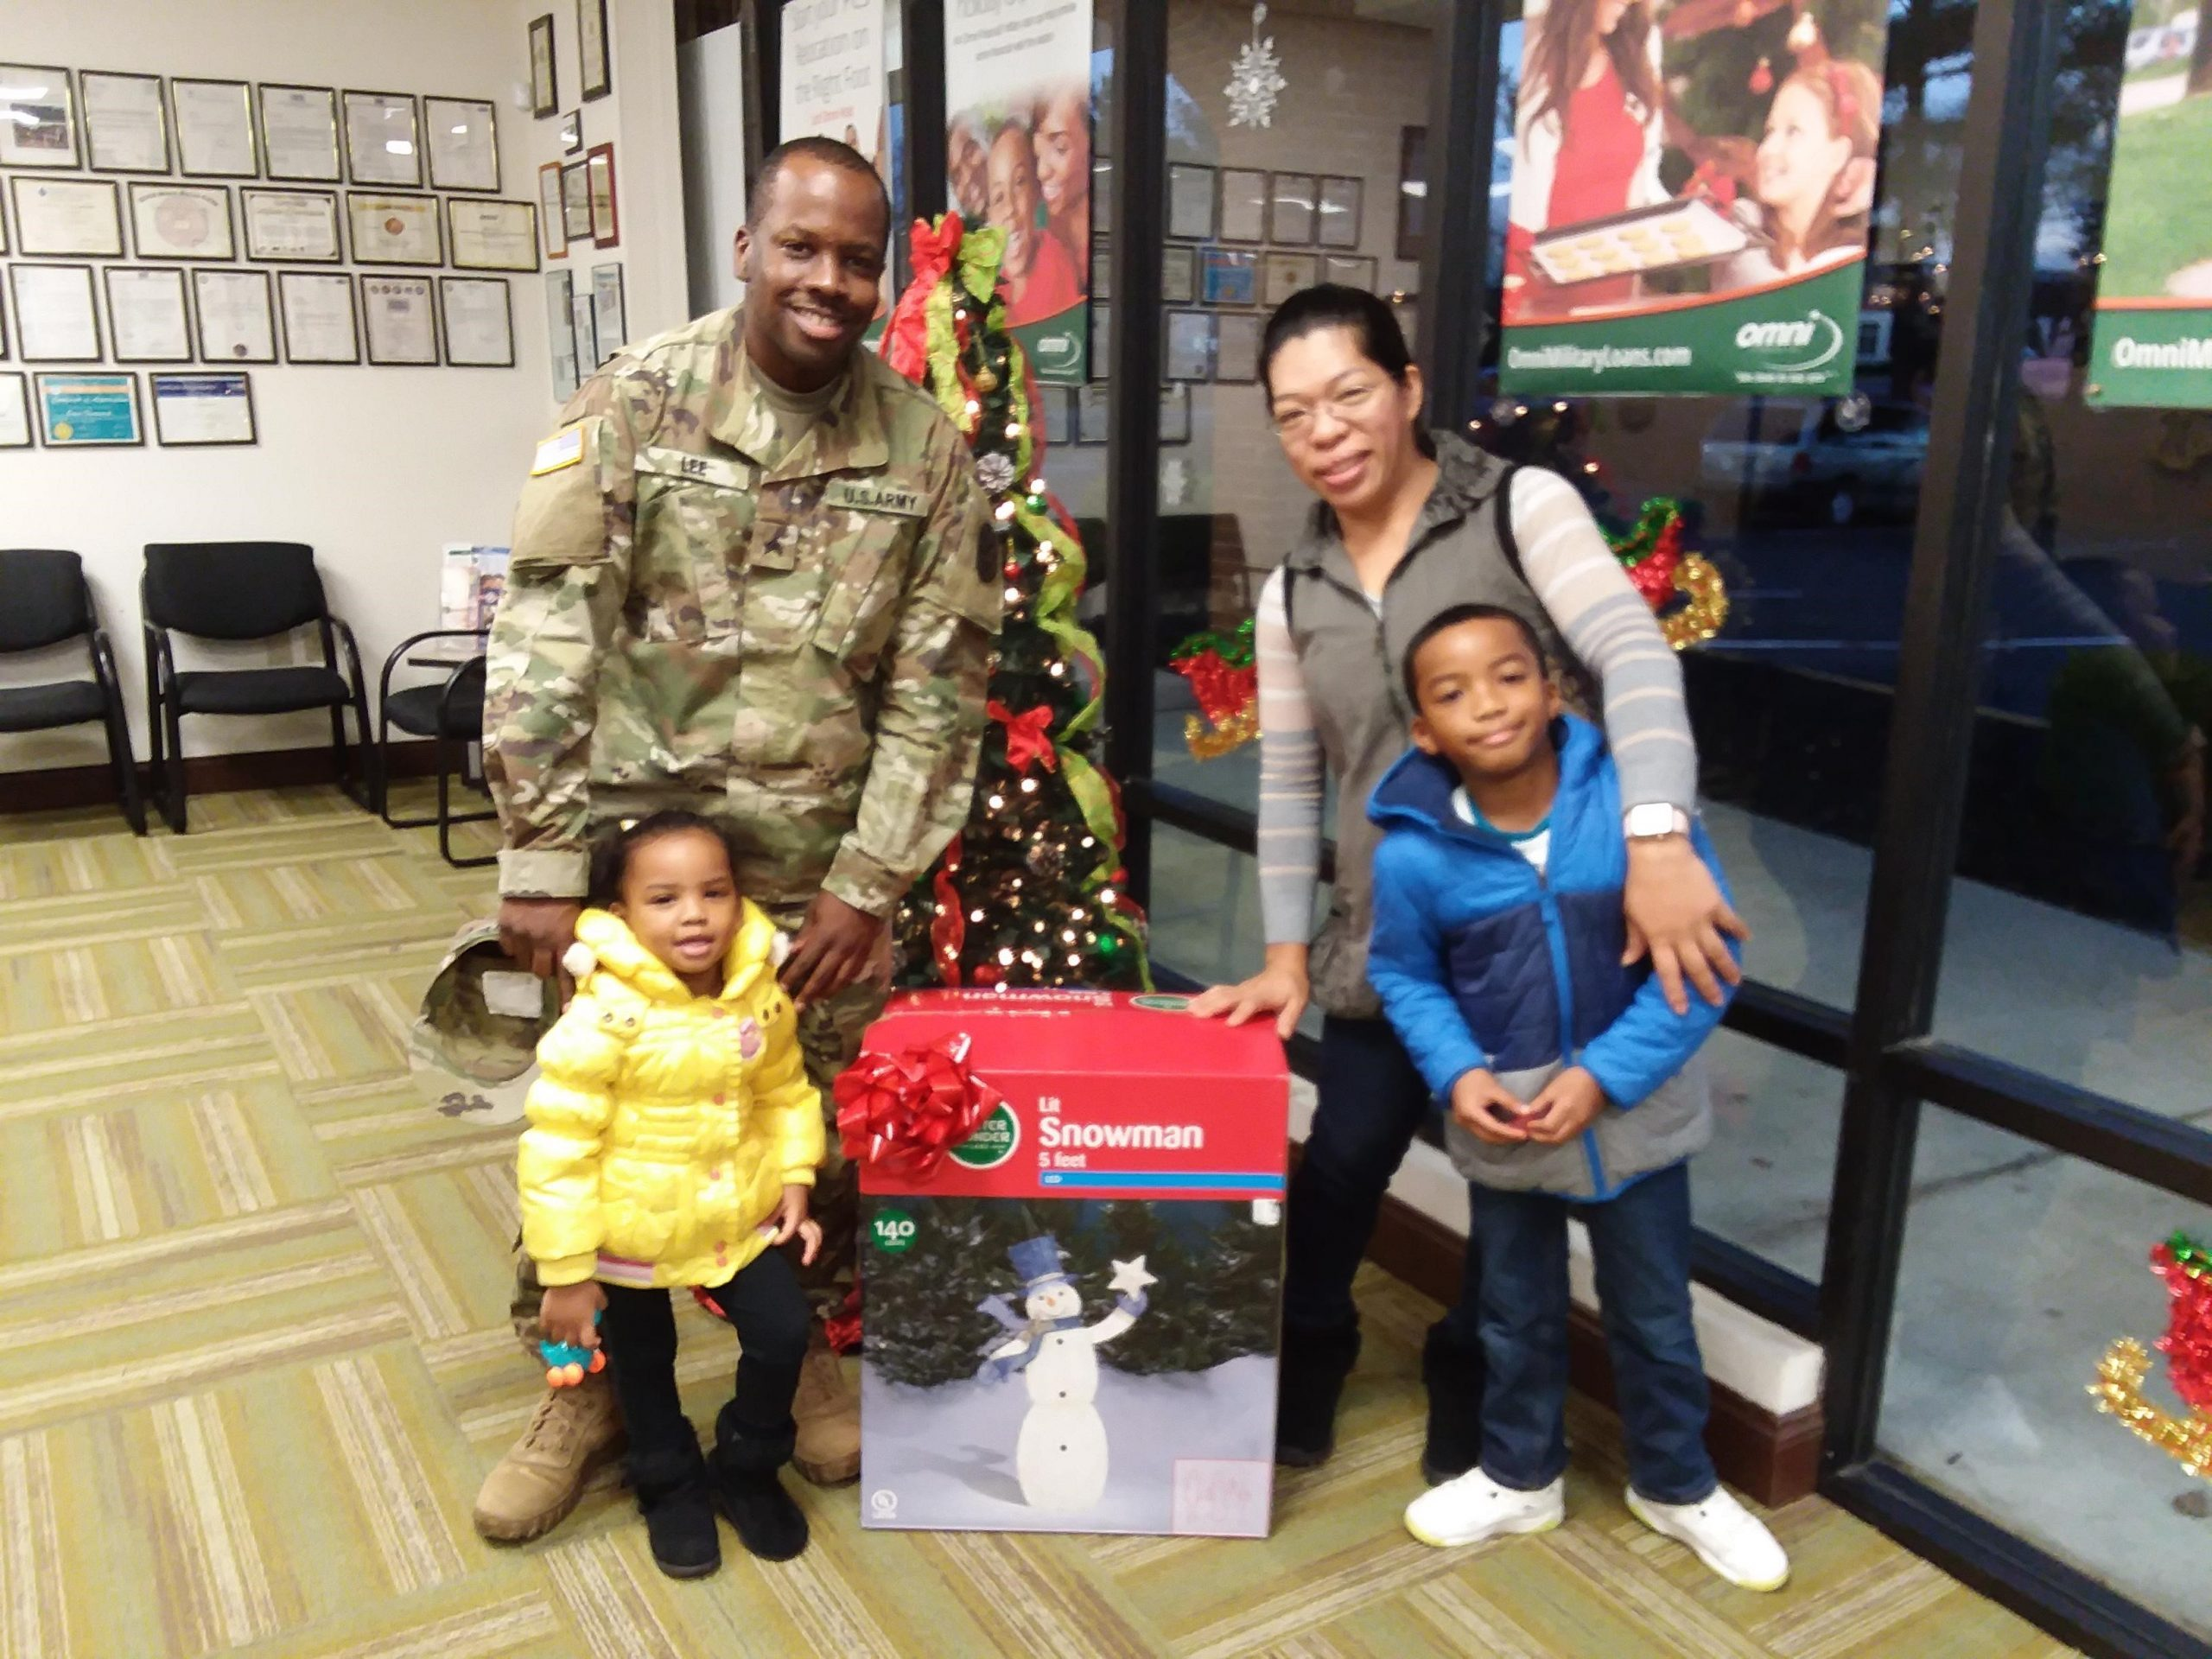 Fort Lee's Lee Family Picking up their 5 foot LED Snowman from Omni Office Prince George